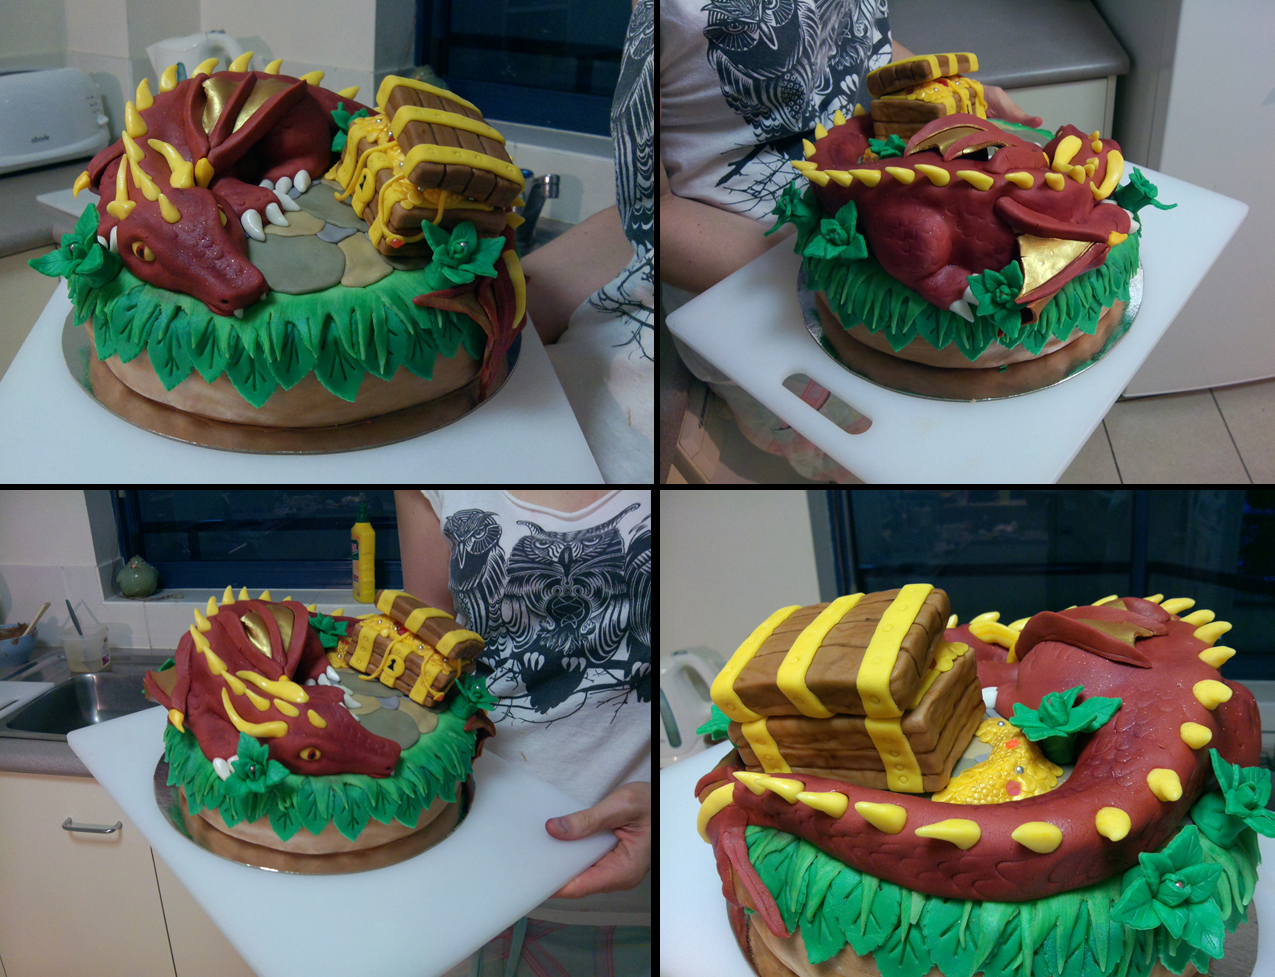 Dragon cake by Resident-Jade